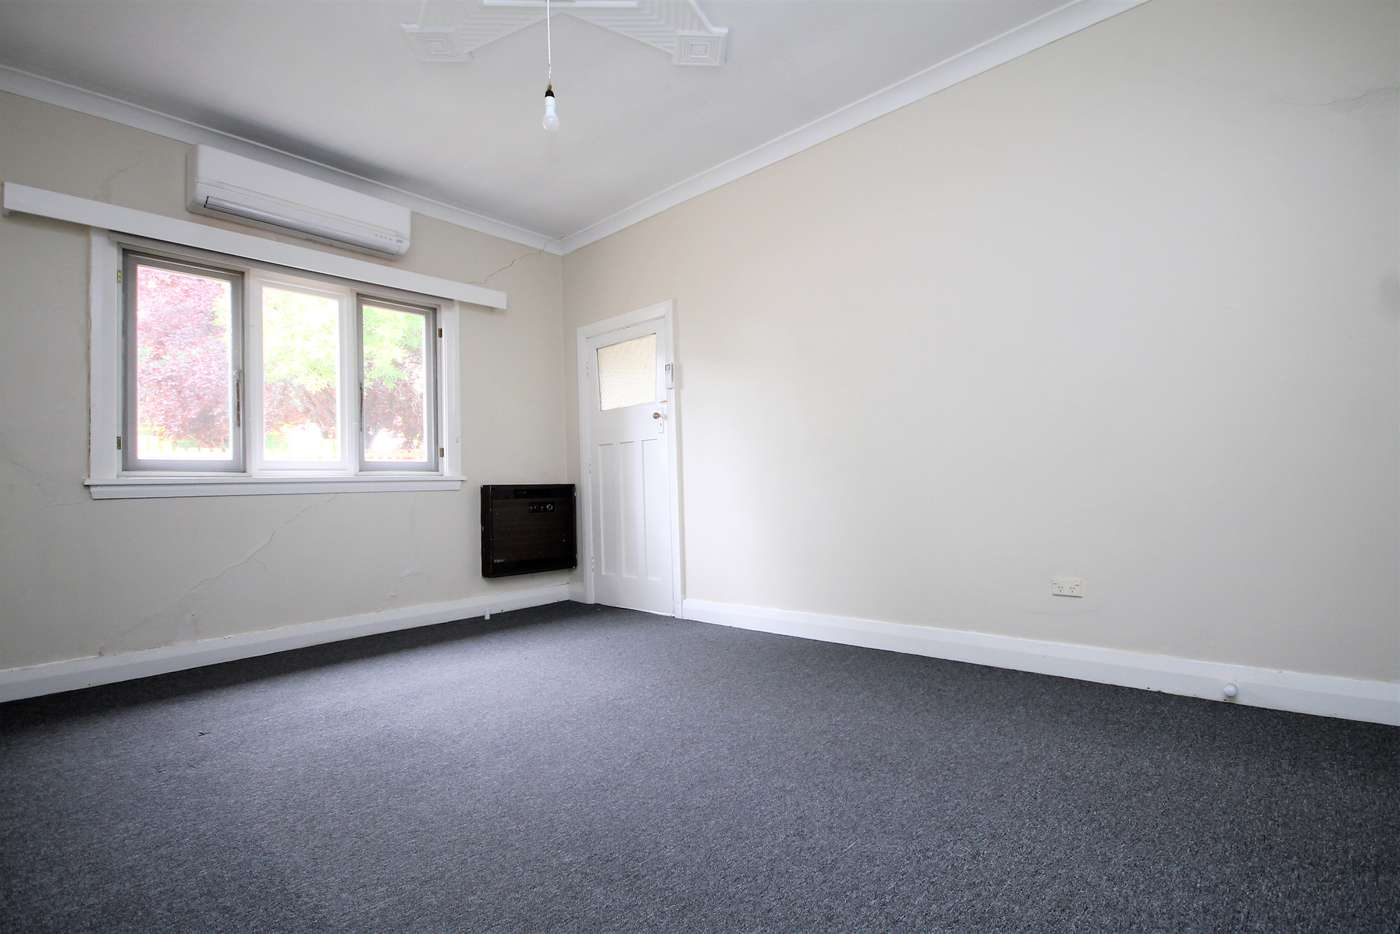 Seventh view of Homely house listing, 173 Rocket Street, Bathurst NSW 2795